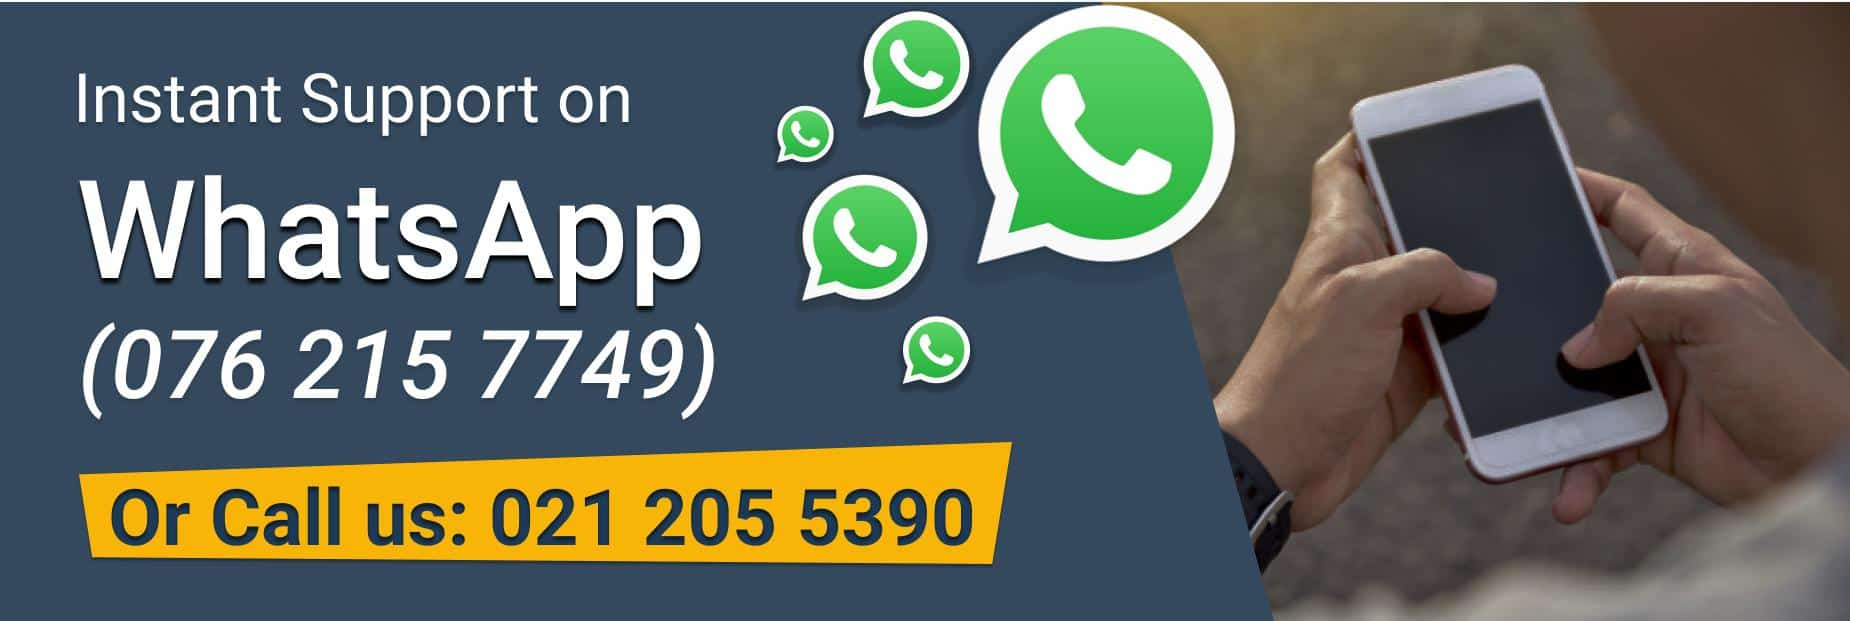 WhatsApp-Banner